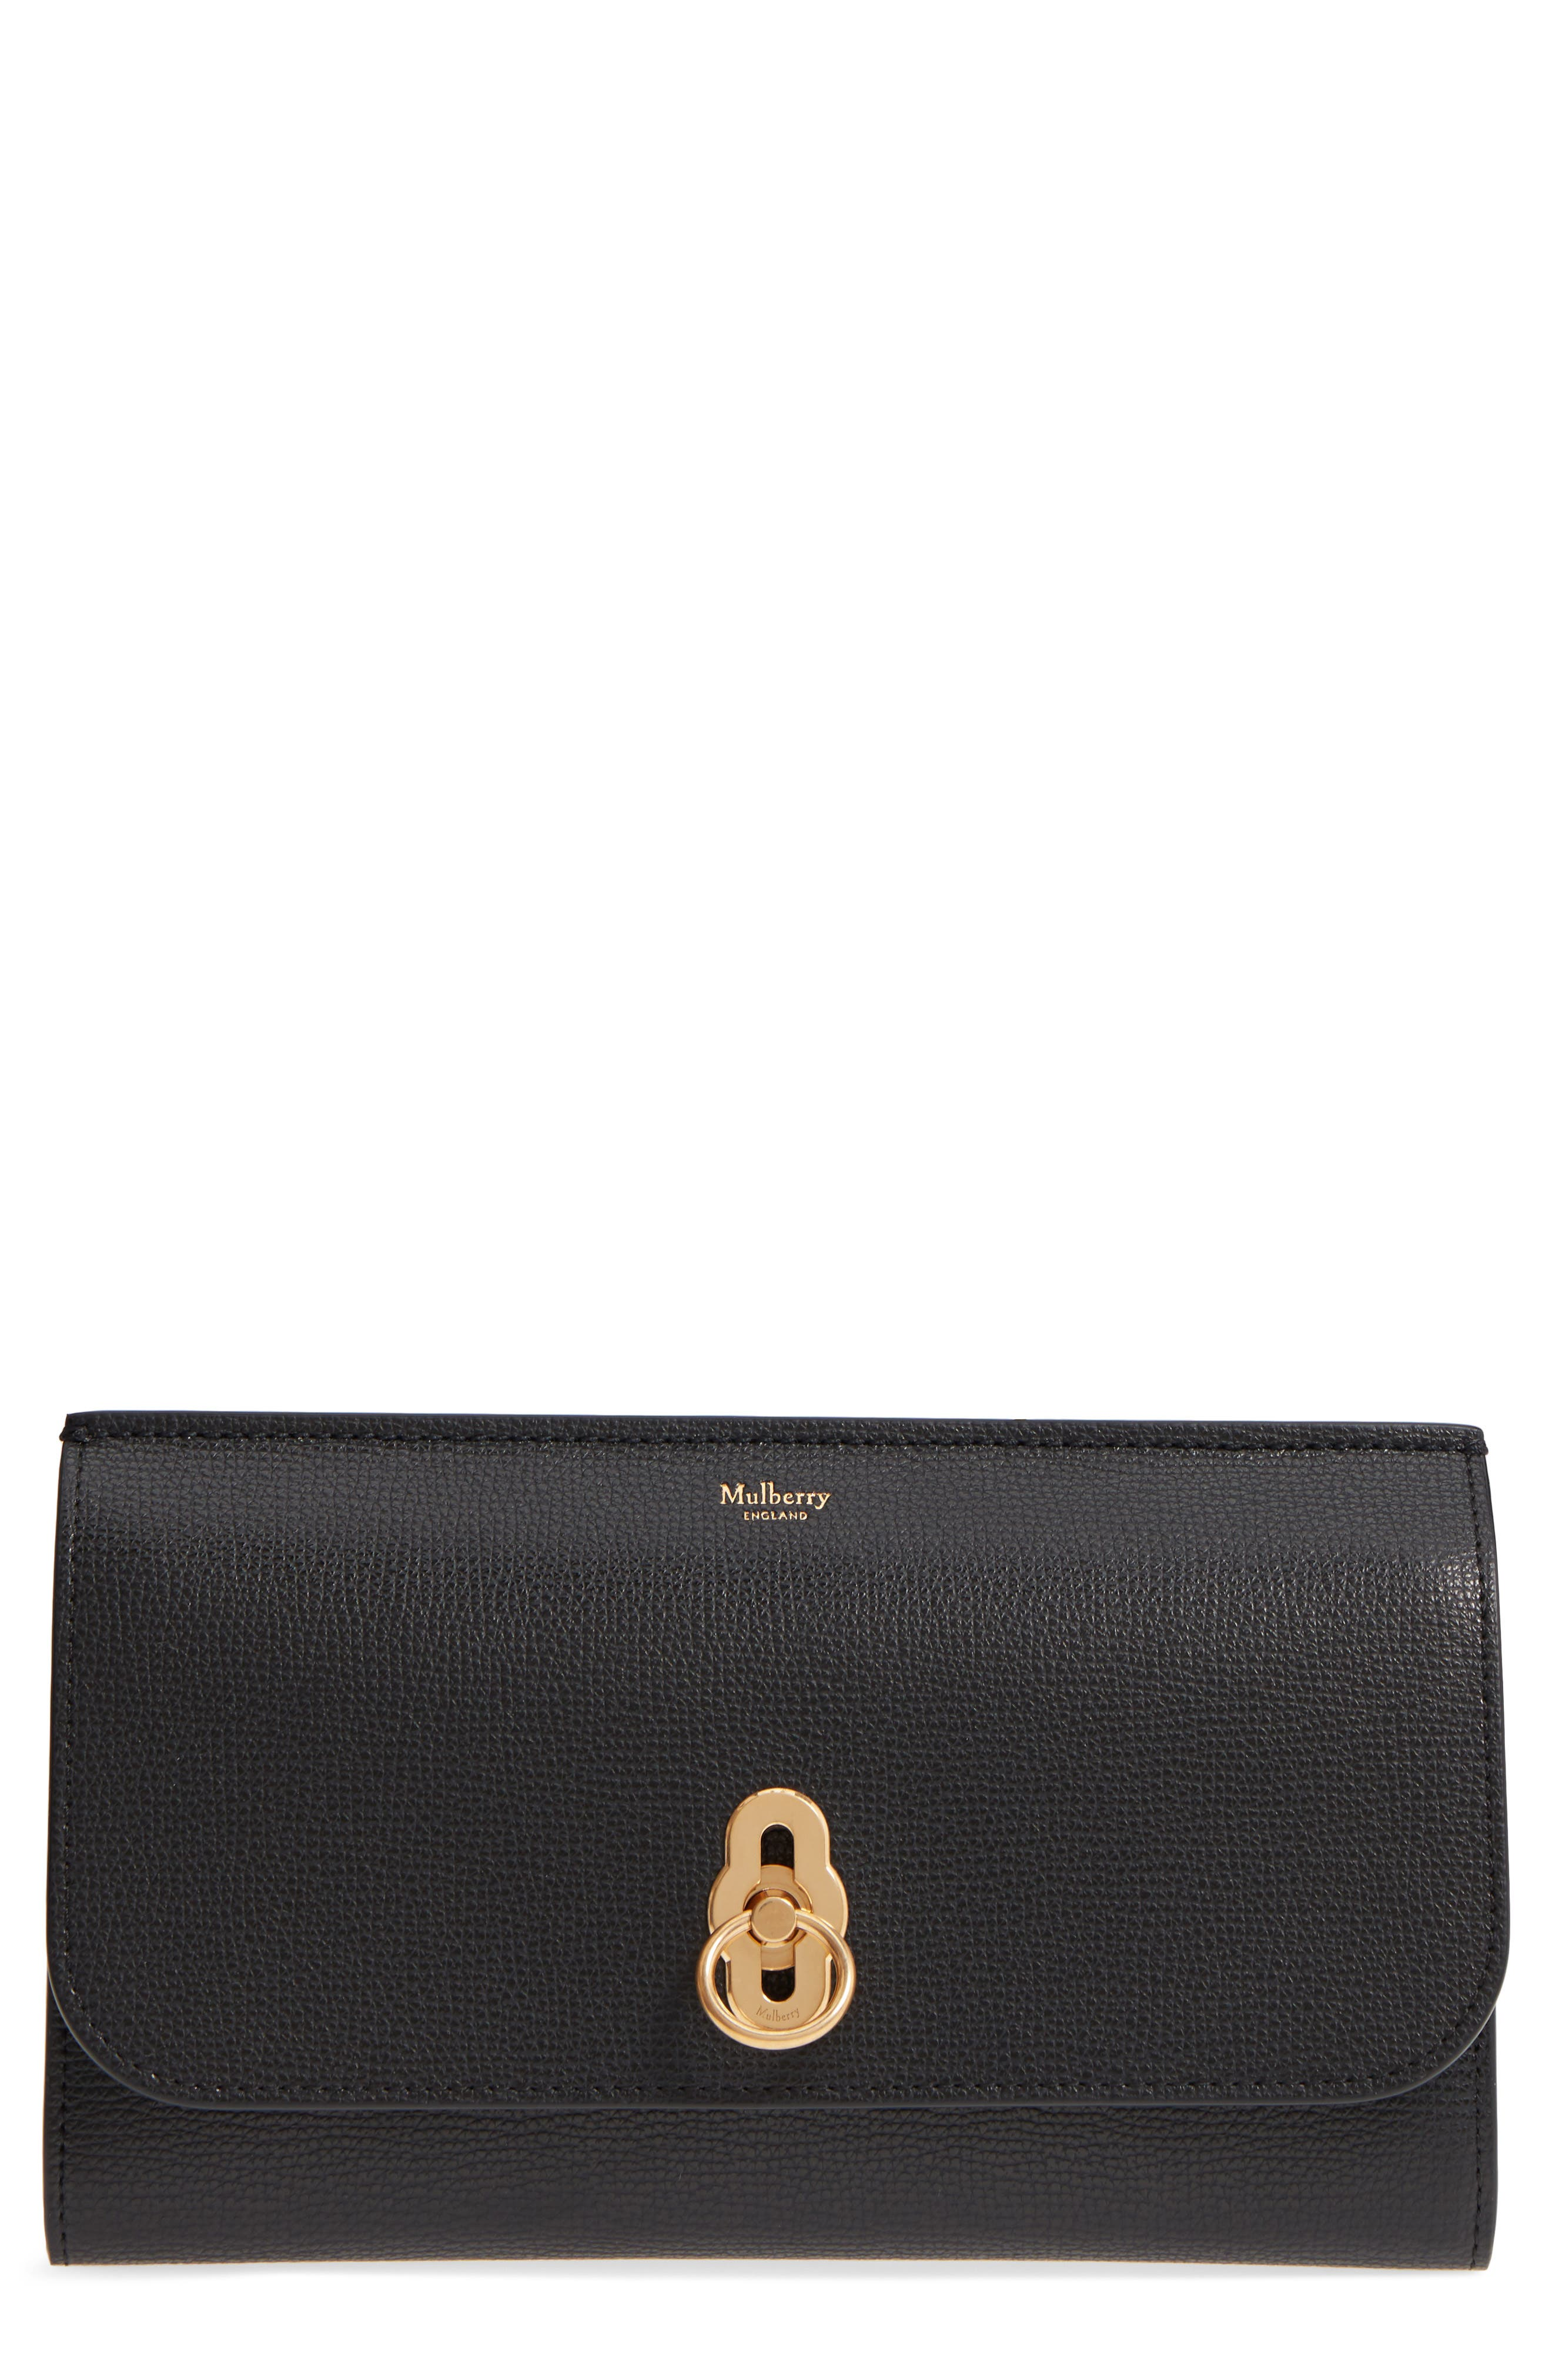 Amberley Calfskin Leather Clutch,                         Main,                         color, Black